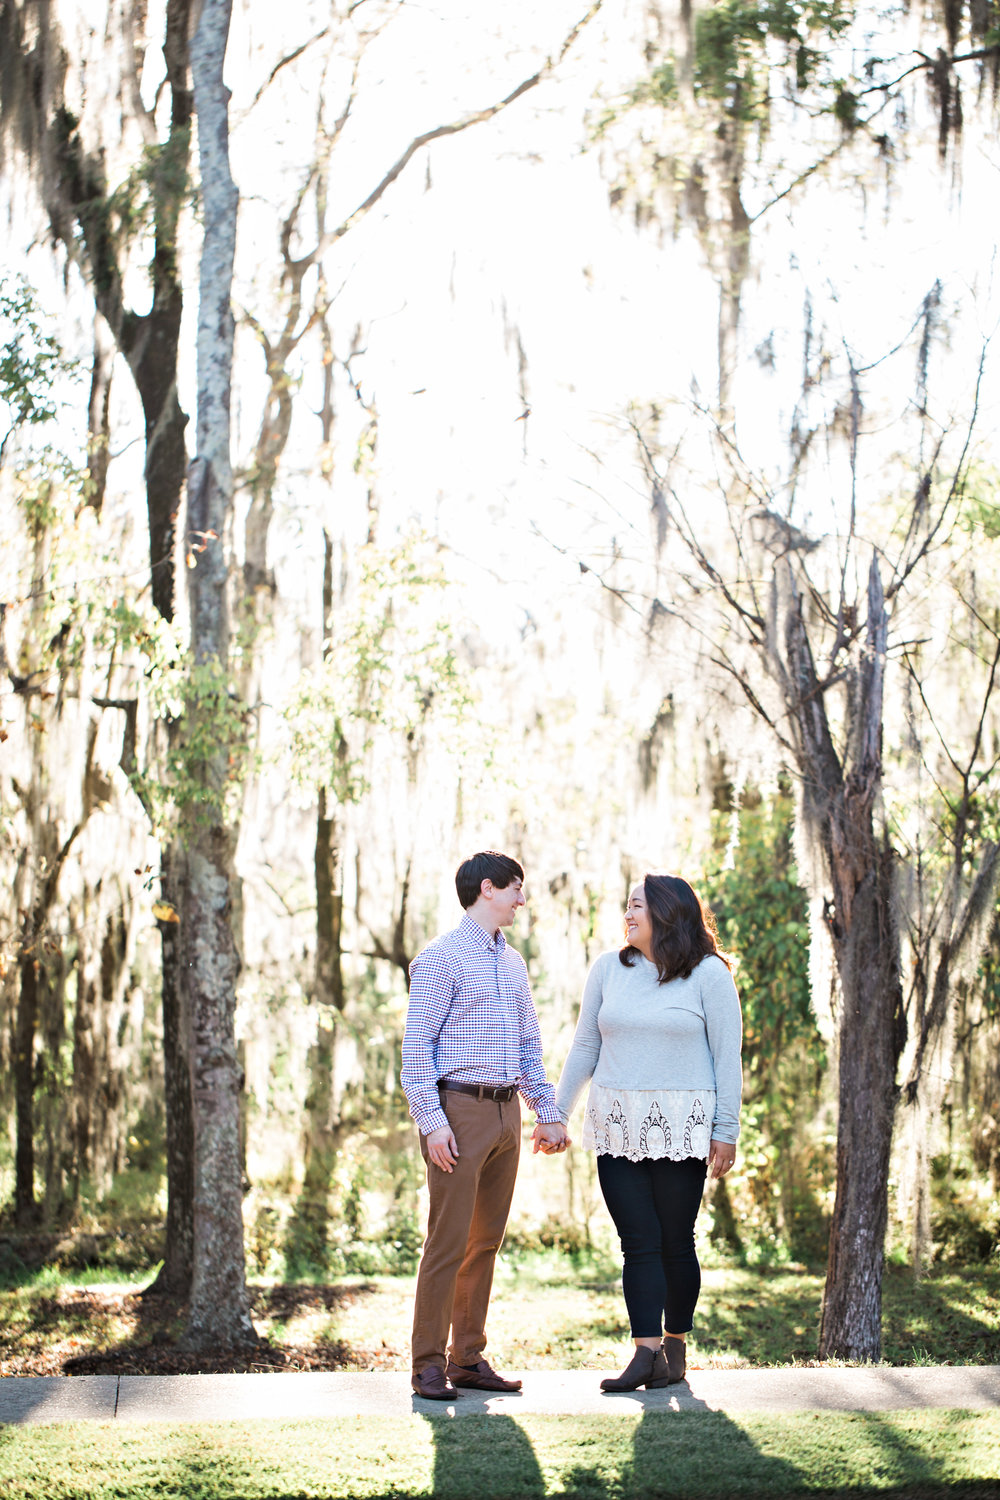 Montgomery-Alabama-Wedding-Photographers-Hampstead-Nick-Drollette-109.jpg